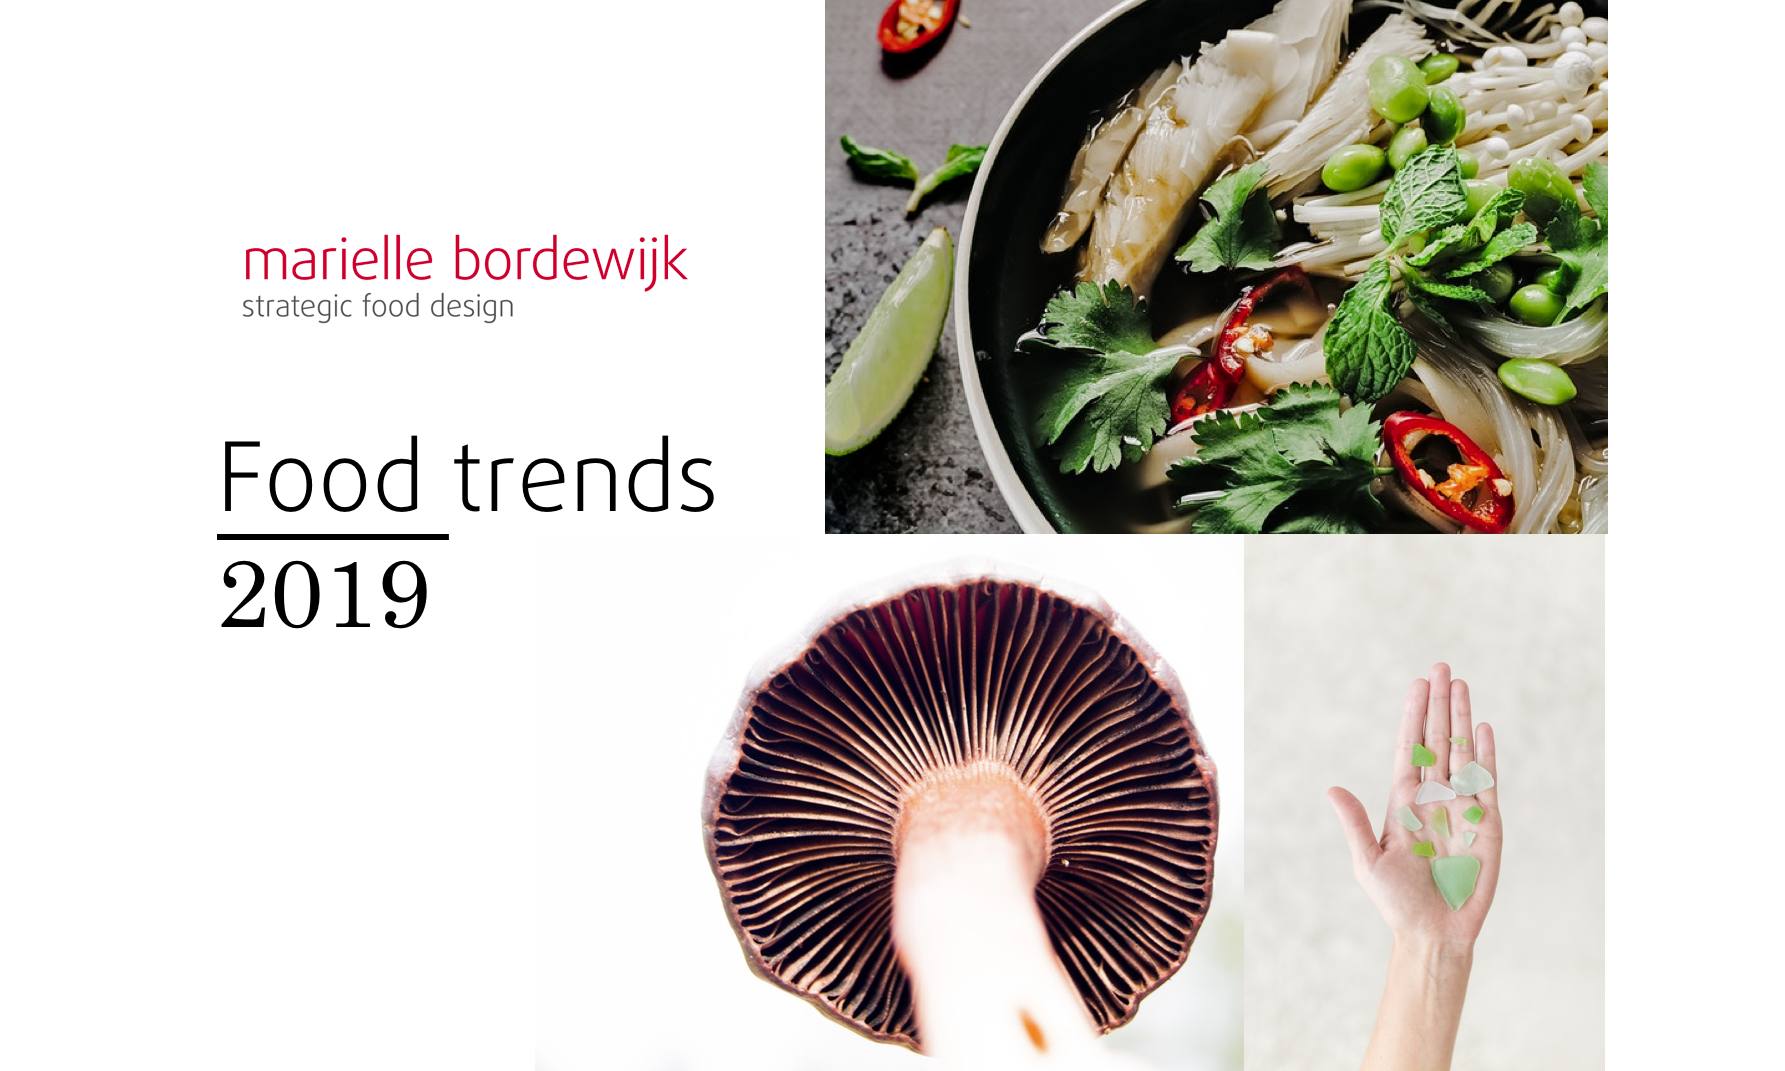 food trends for 2019